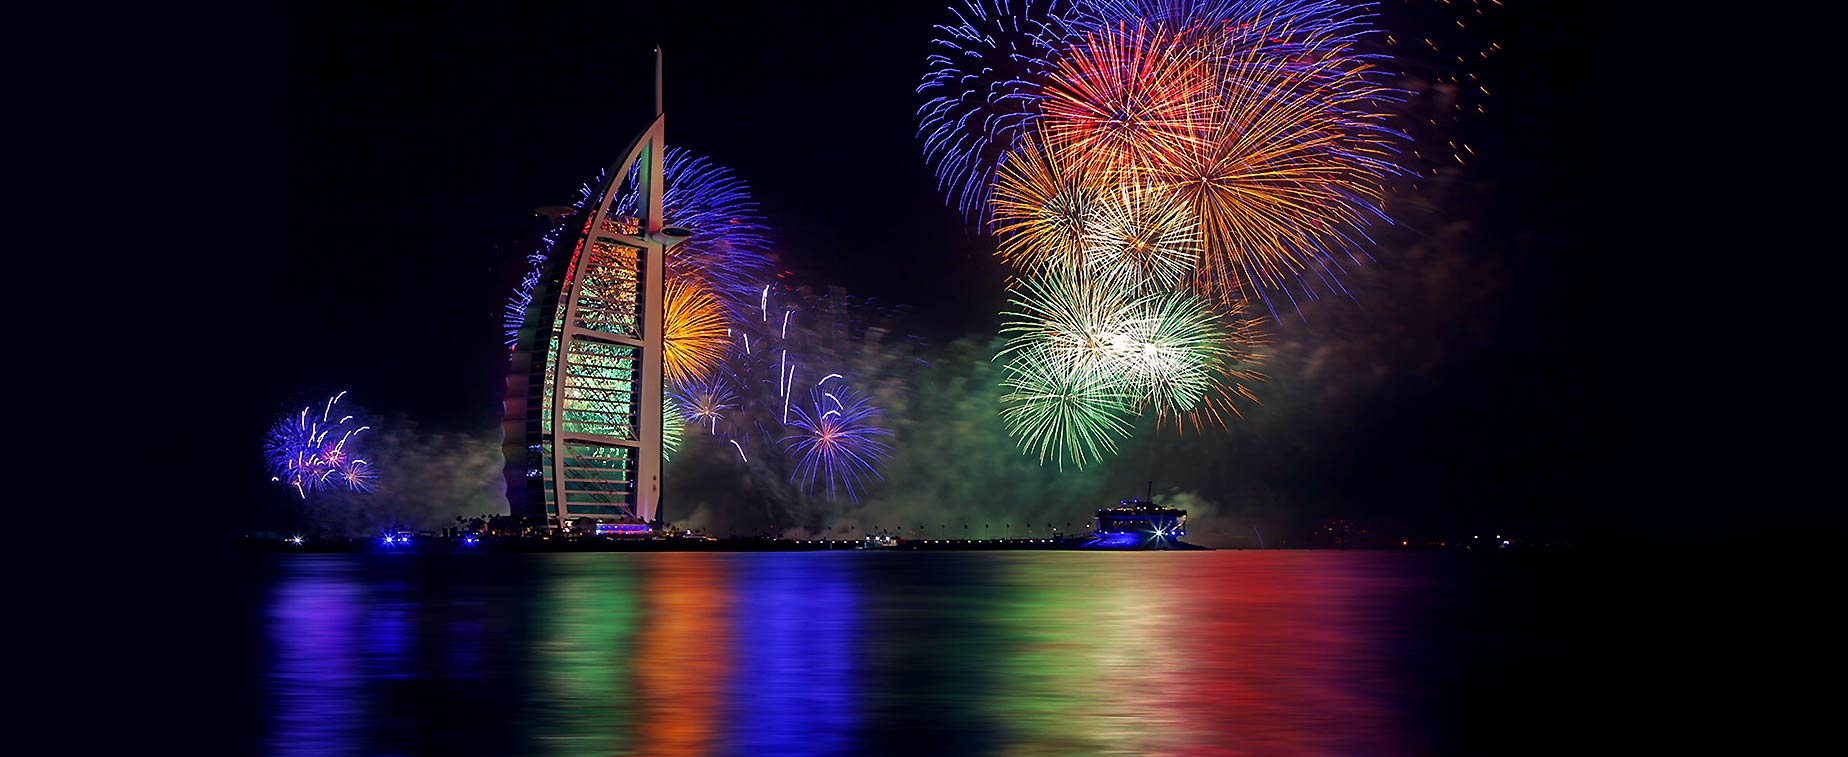 Dubai Leads New Year's Eve